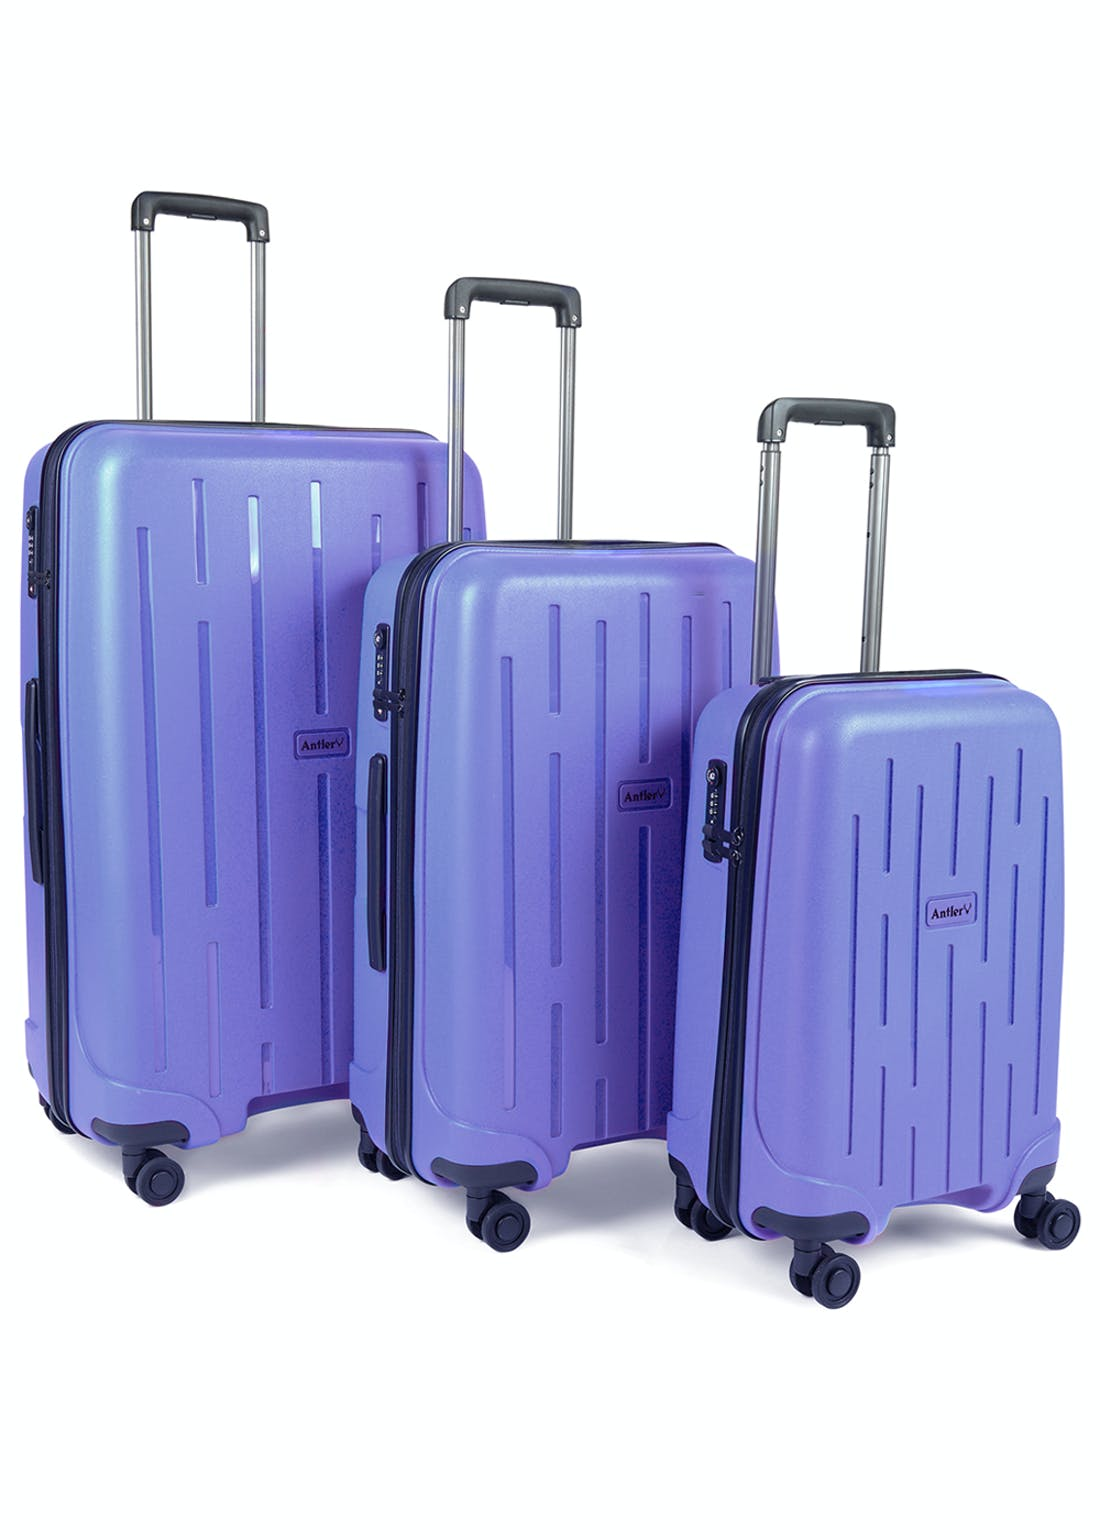 Antler Luggage Lightning Hard Suitcase